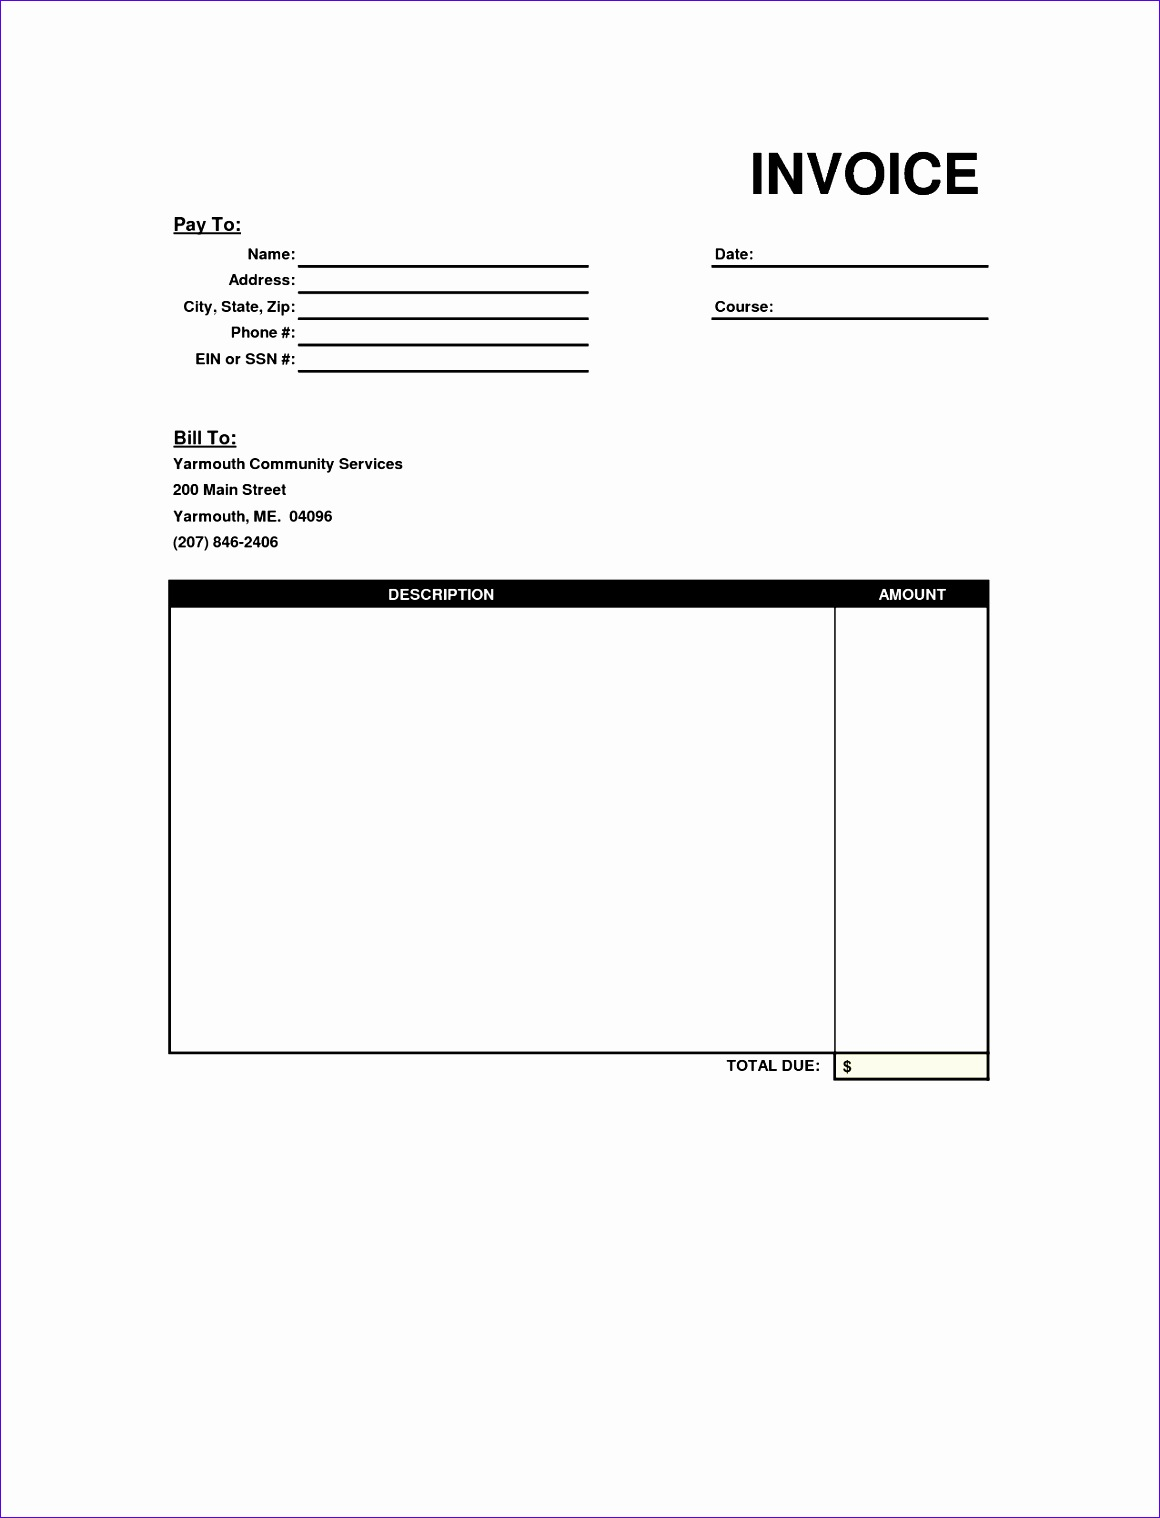 Invoice Template Excel Free Download ExcelTemplates - Free download invoice template excel